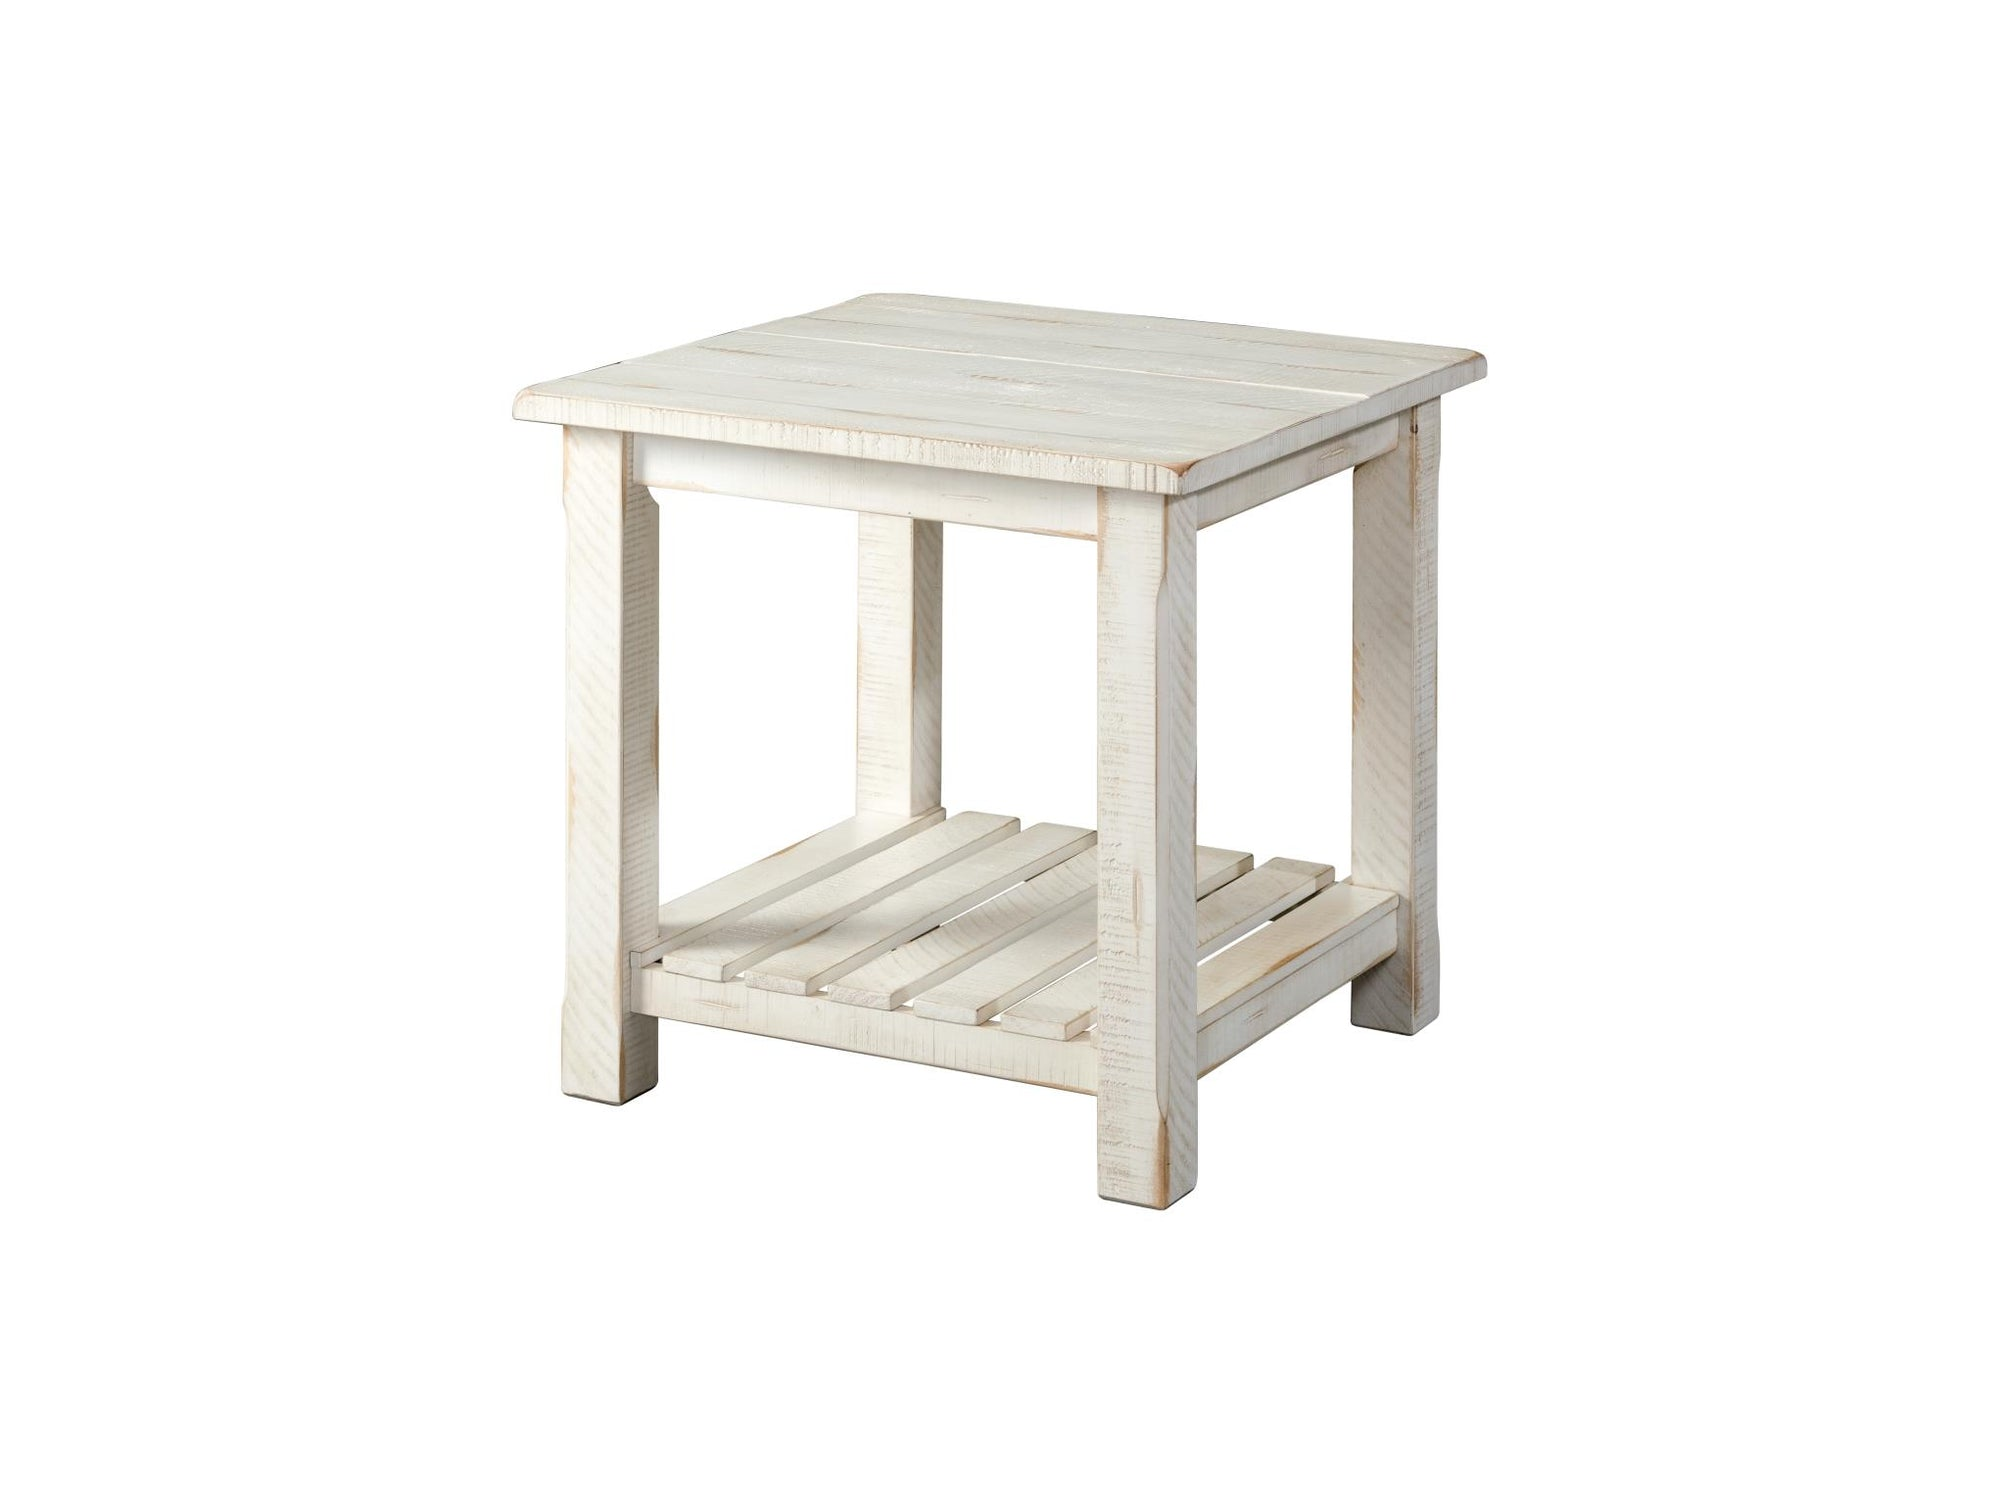 Barn Door Occasional End table - Antique White